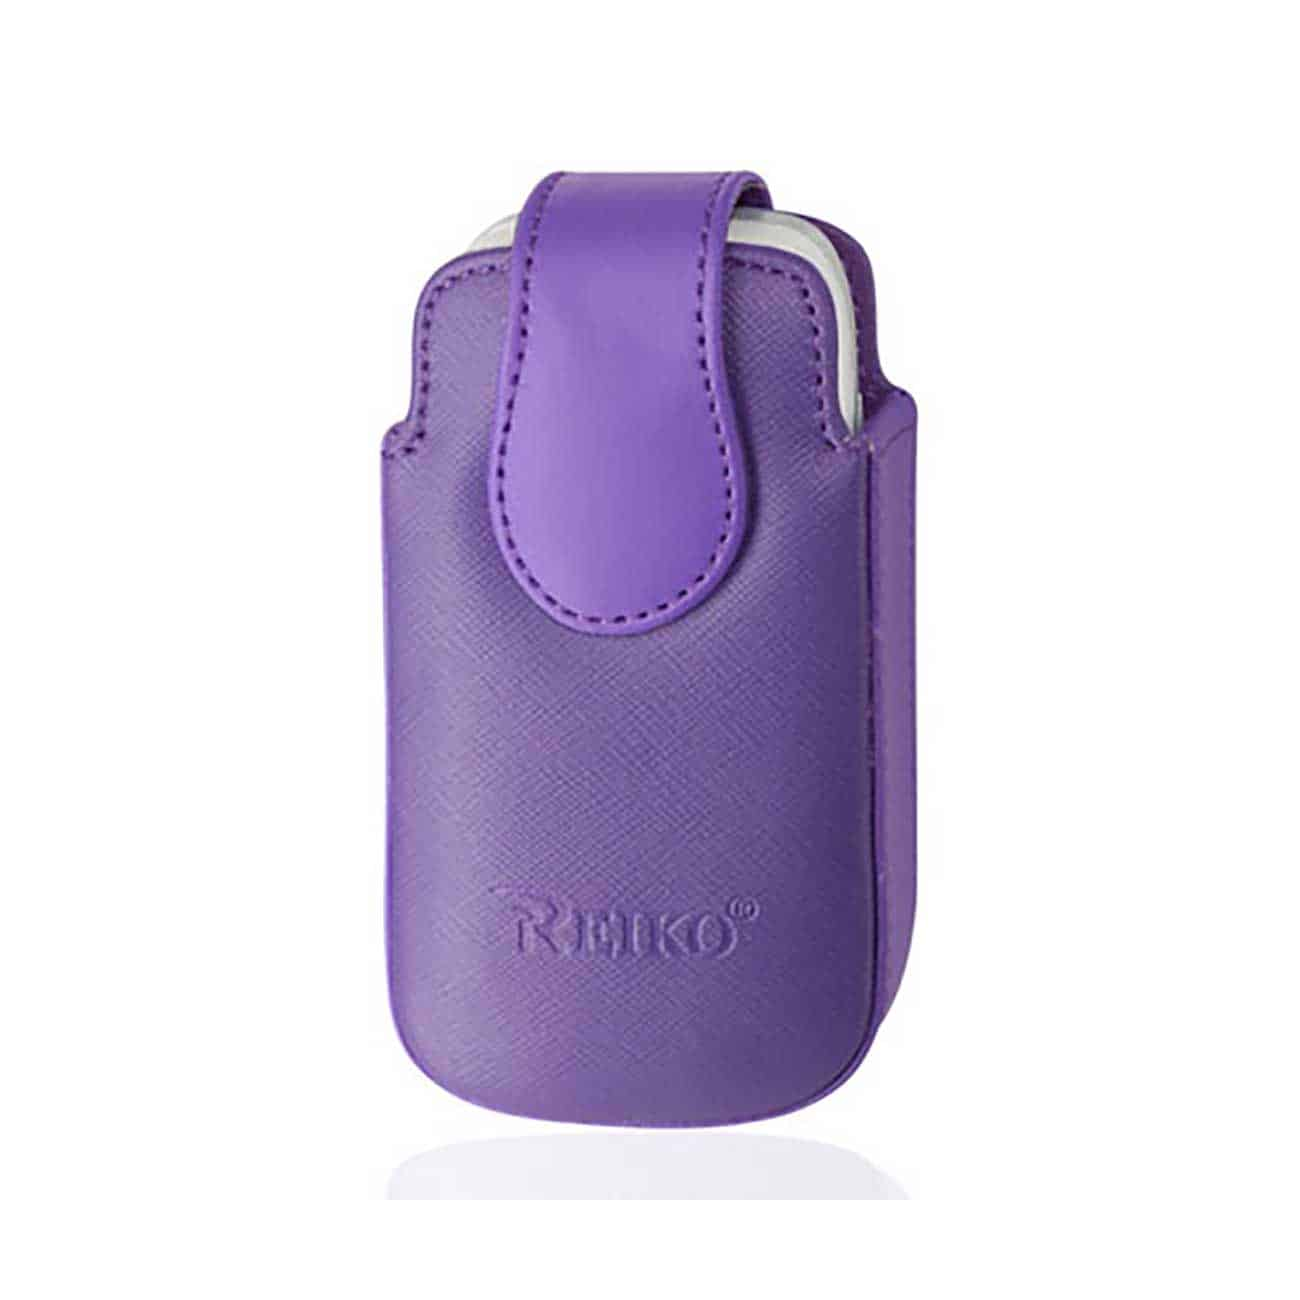 VERTICAL POUCH VP10A LG LX260 RUMOR PURPLE 4.3X2X0.7 INCHES